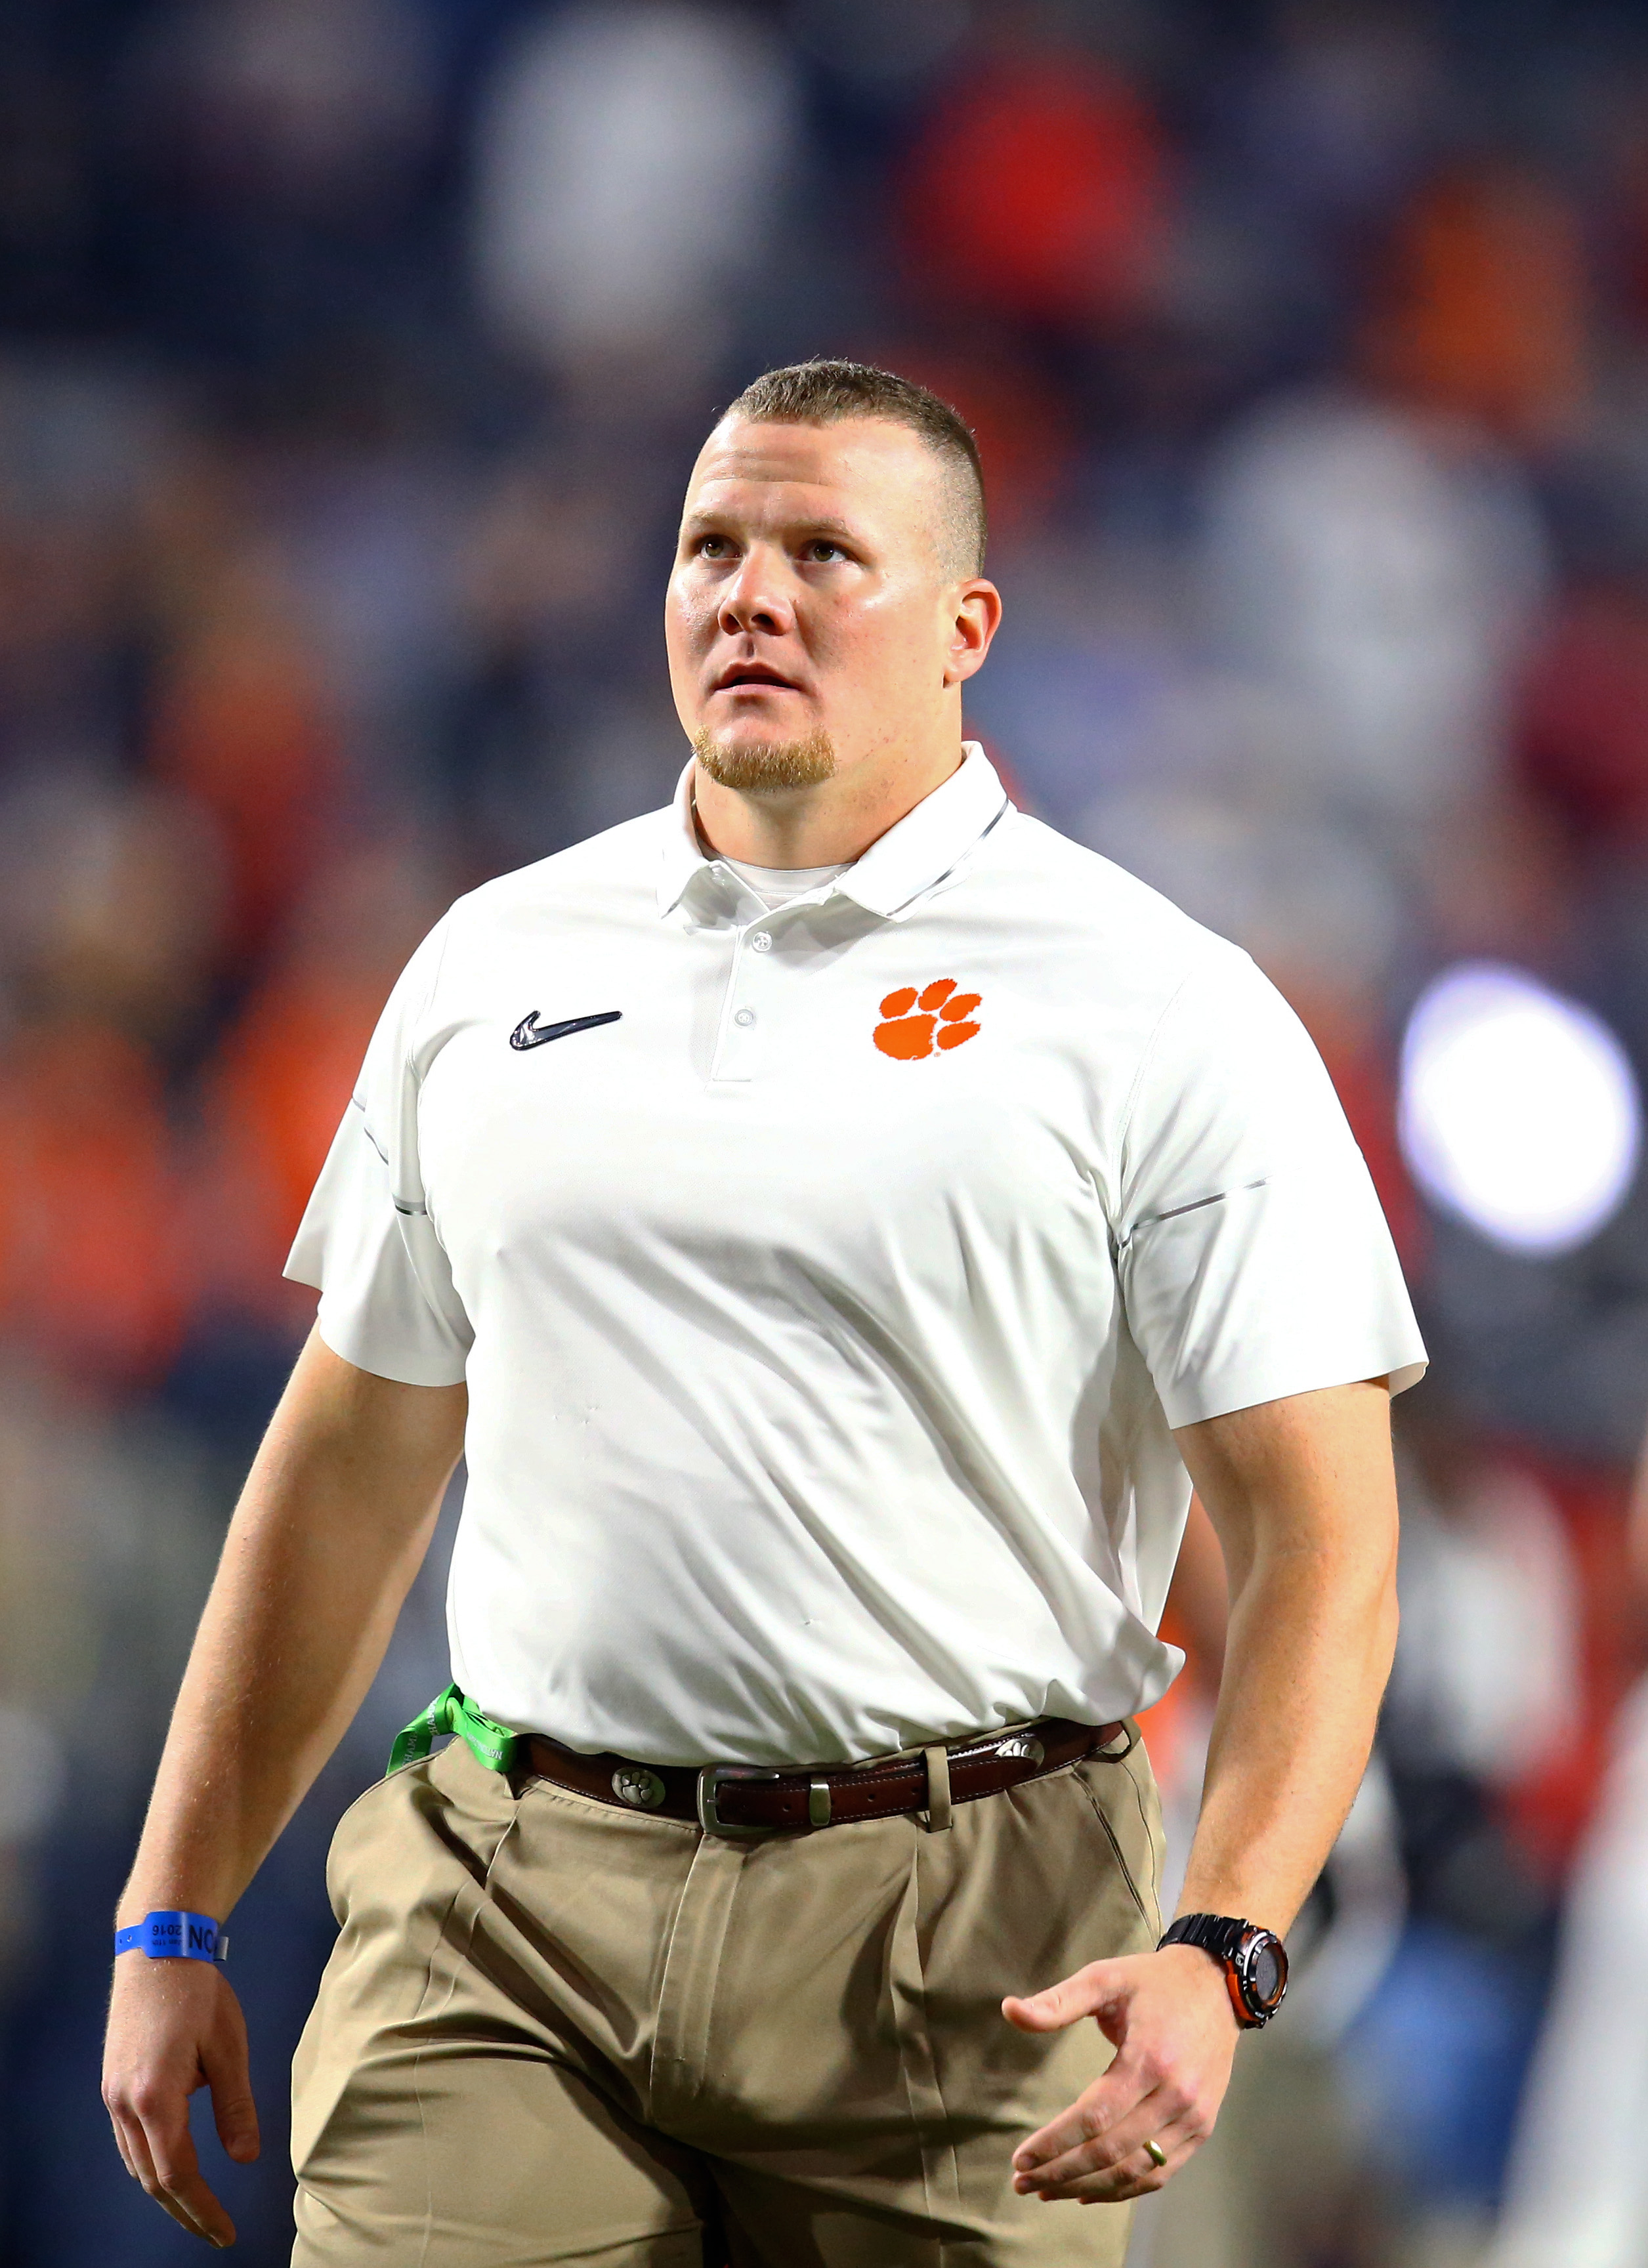 Clemson defensive coordinator Brent Venables snapped at his 'get back' coach, and I'm shook